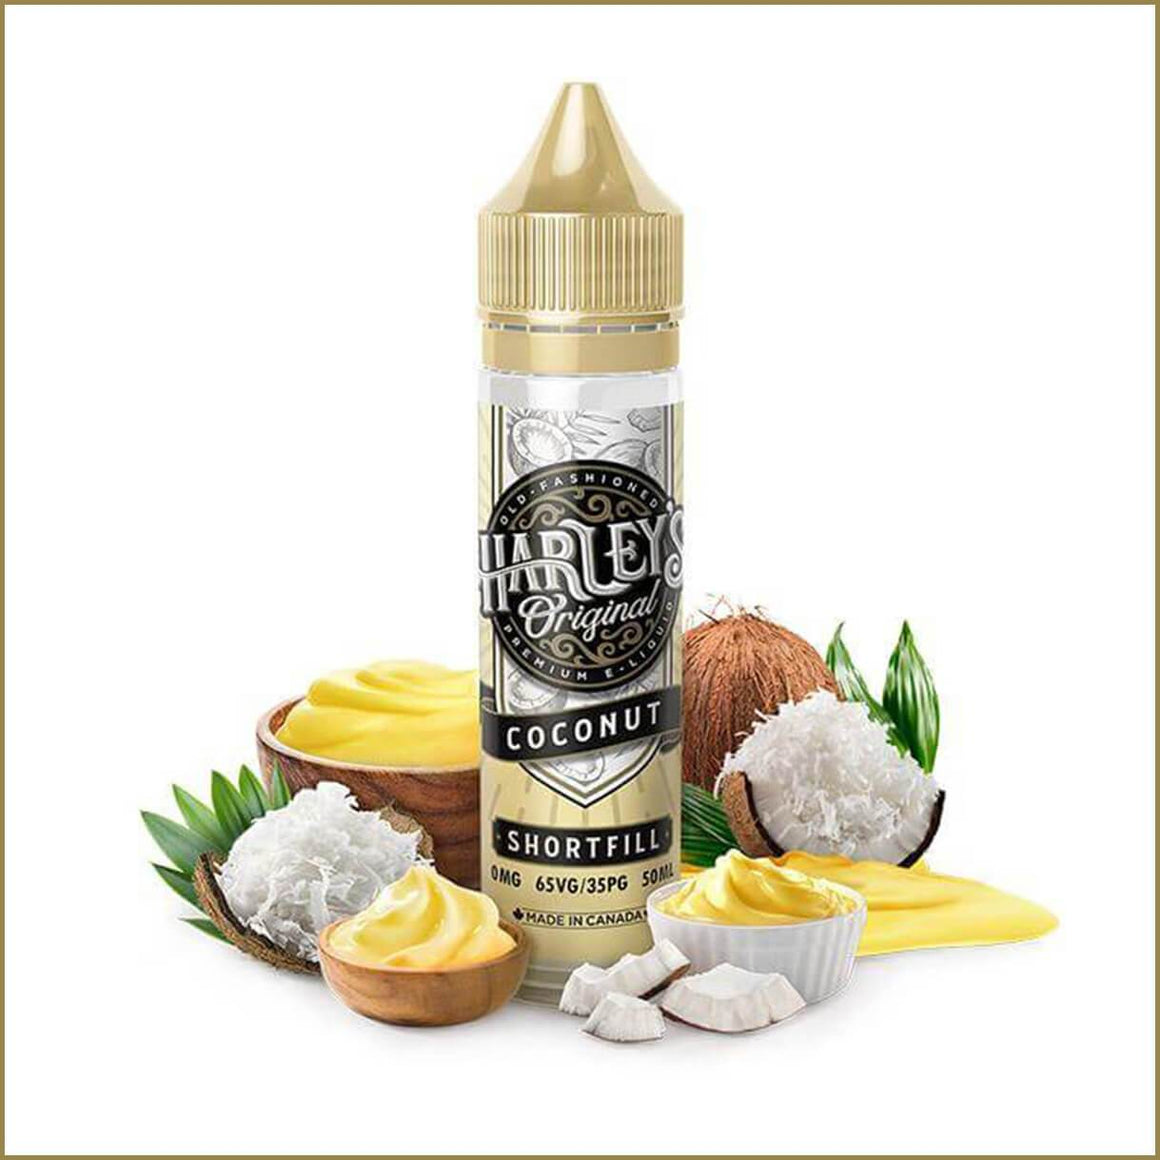 Harley's Original Coconut 50ml